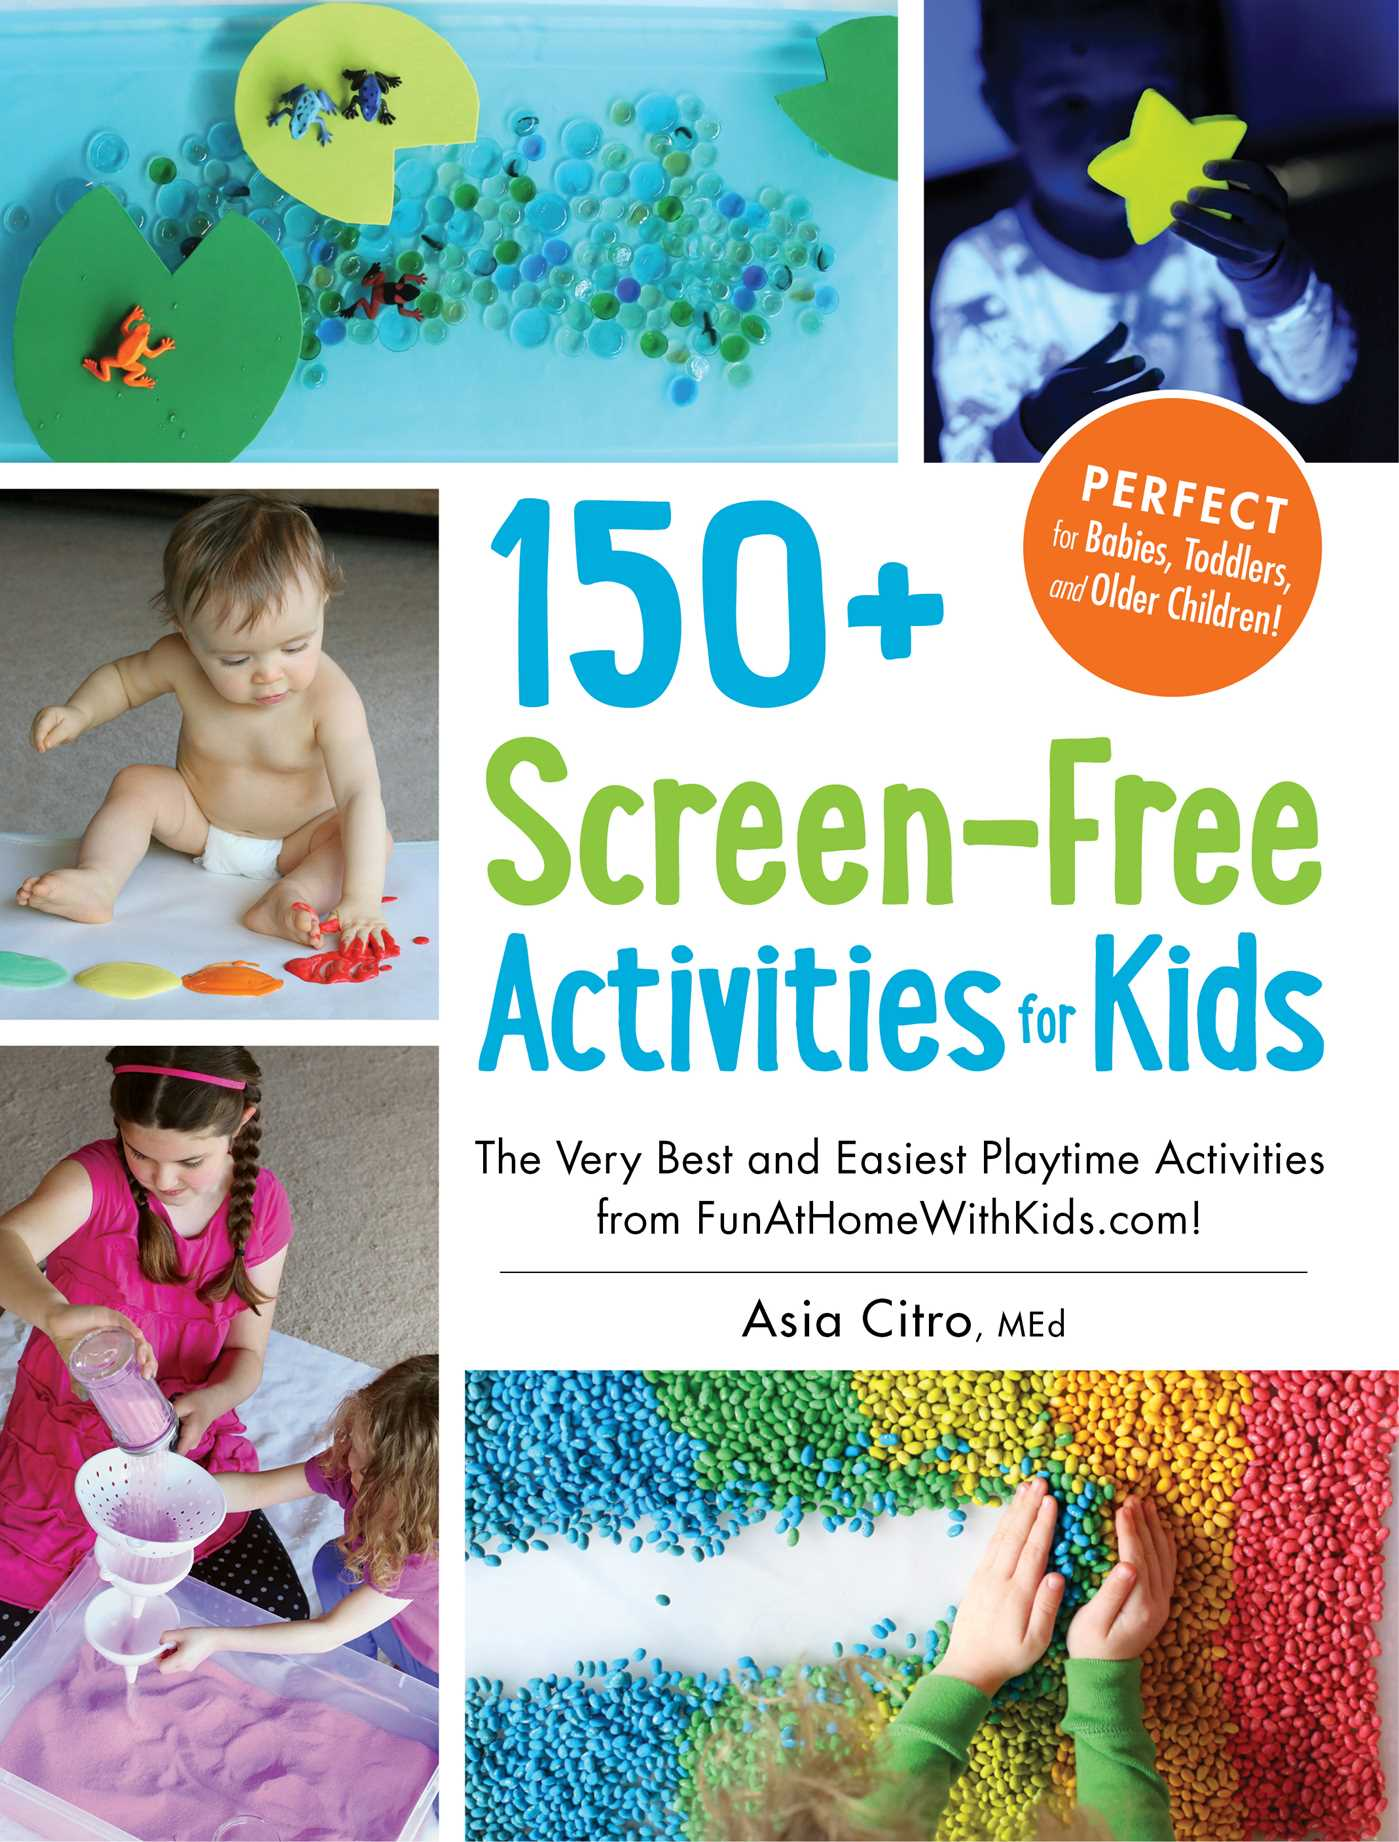 150+ Screen-Free Activities for Kids The Very Best and Easiest Playtime Activities from FunAtHomeWithKids.com!